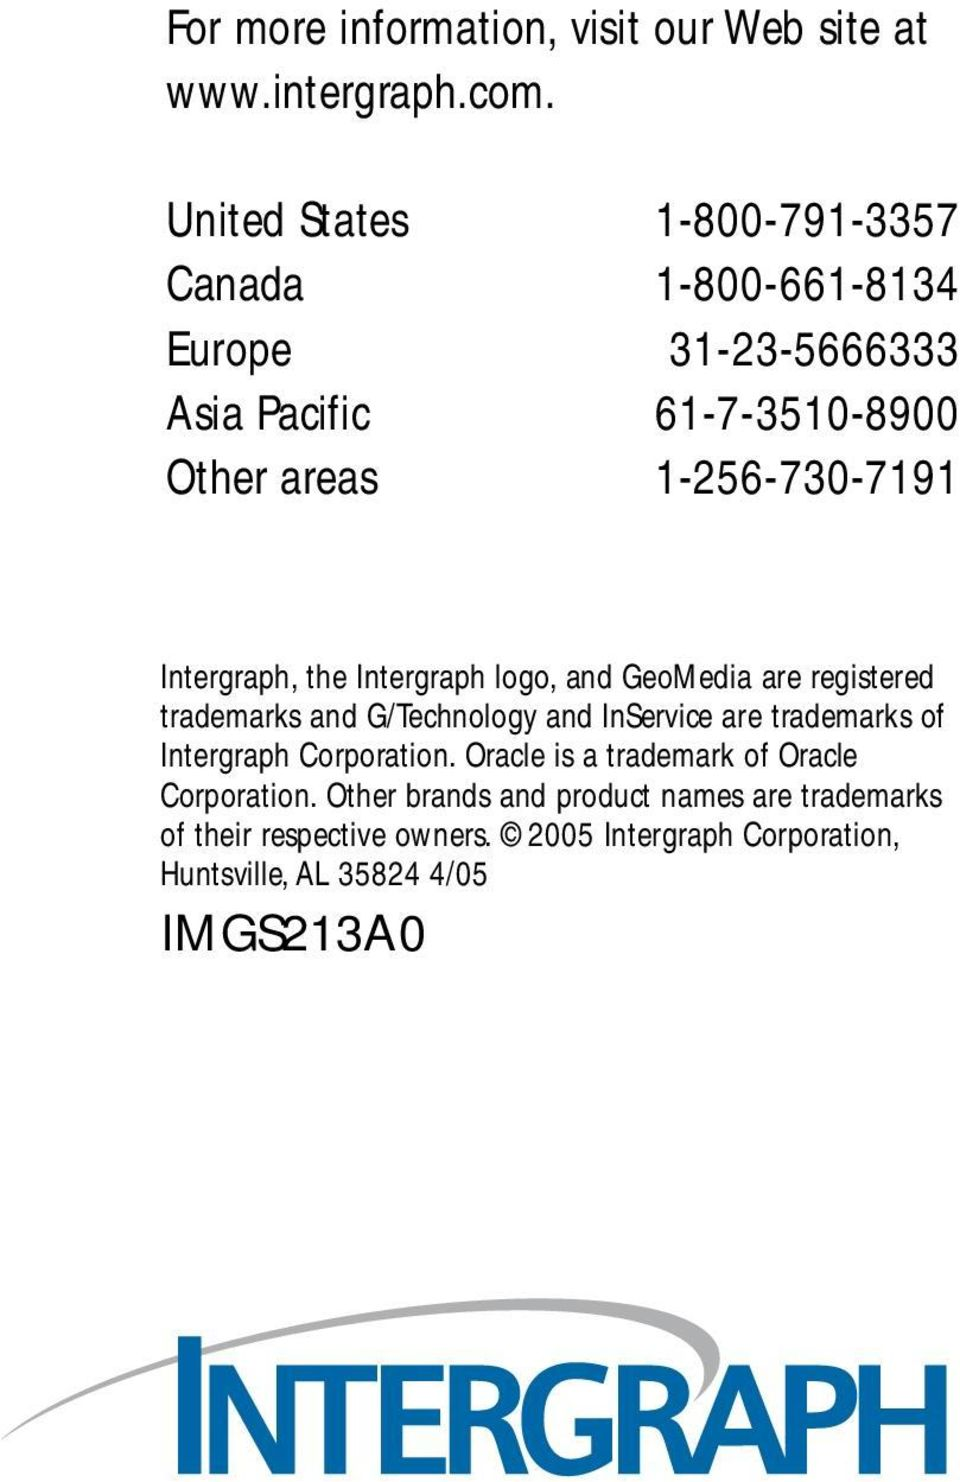 Intergraph, the Intergraph logo, and GeoMedia are registered trademarks and G/Technology and InService are trademarks of